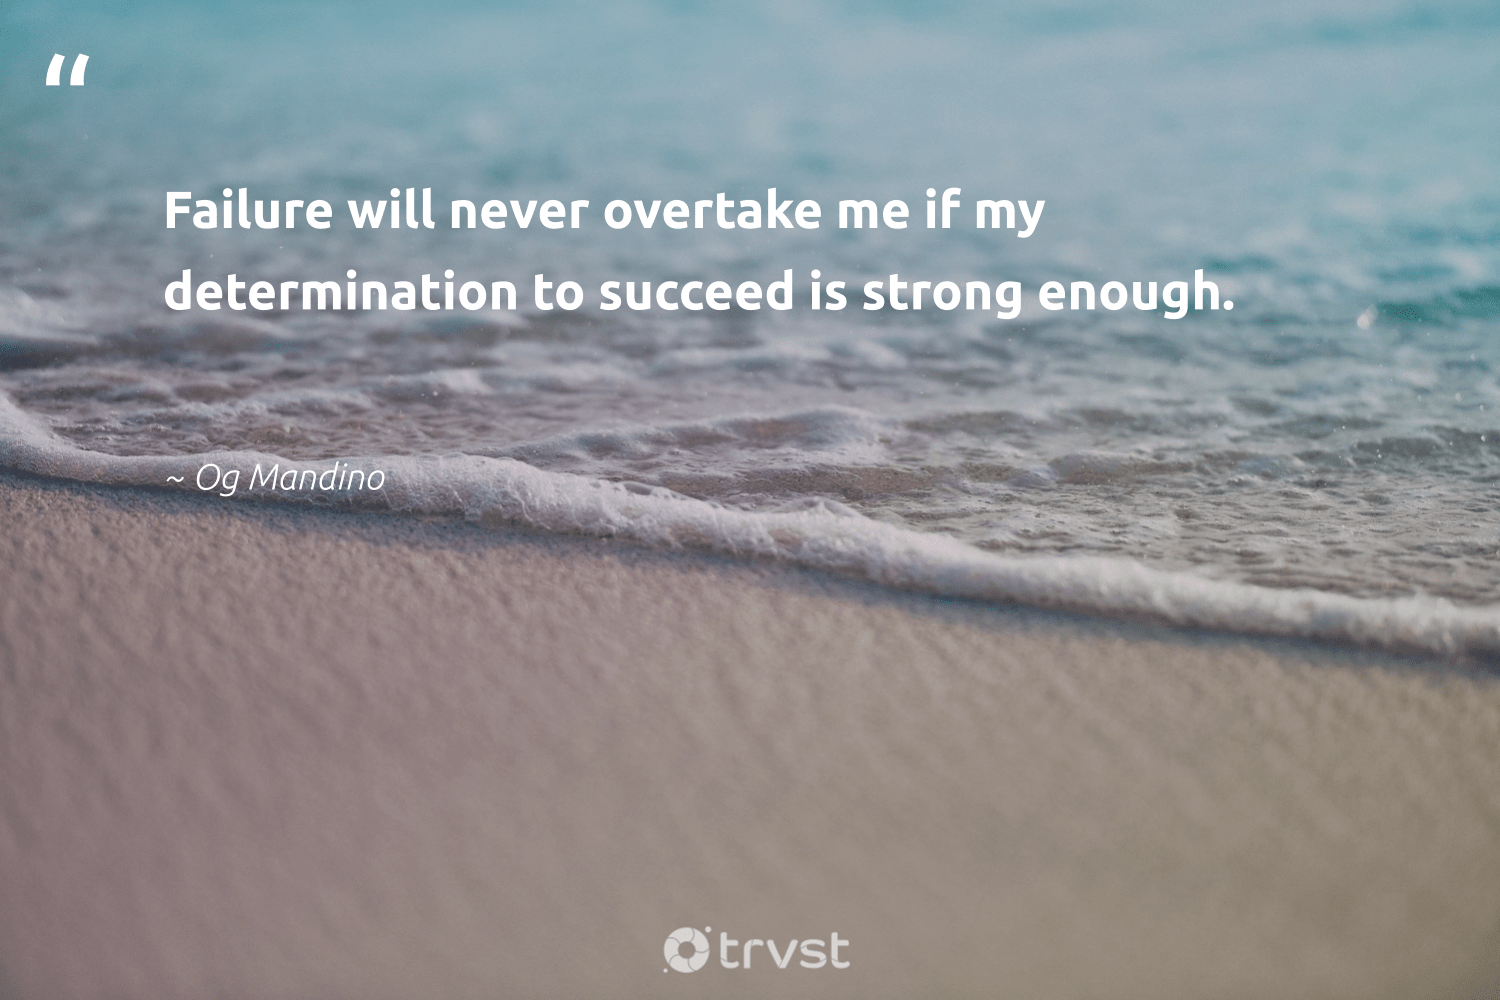 """""""Failure will never overtake me if my determination to succeed is strong enough.""""  - Og Mandino #trvst #quotes #nevergiveup #dogood #futureofwork #socialimpact #softskills #ecoconscious #begreat #gogreen #socialchange #bethechange"""